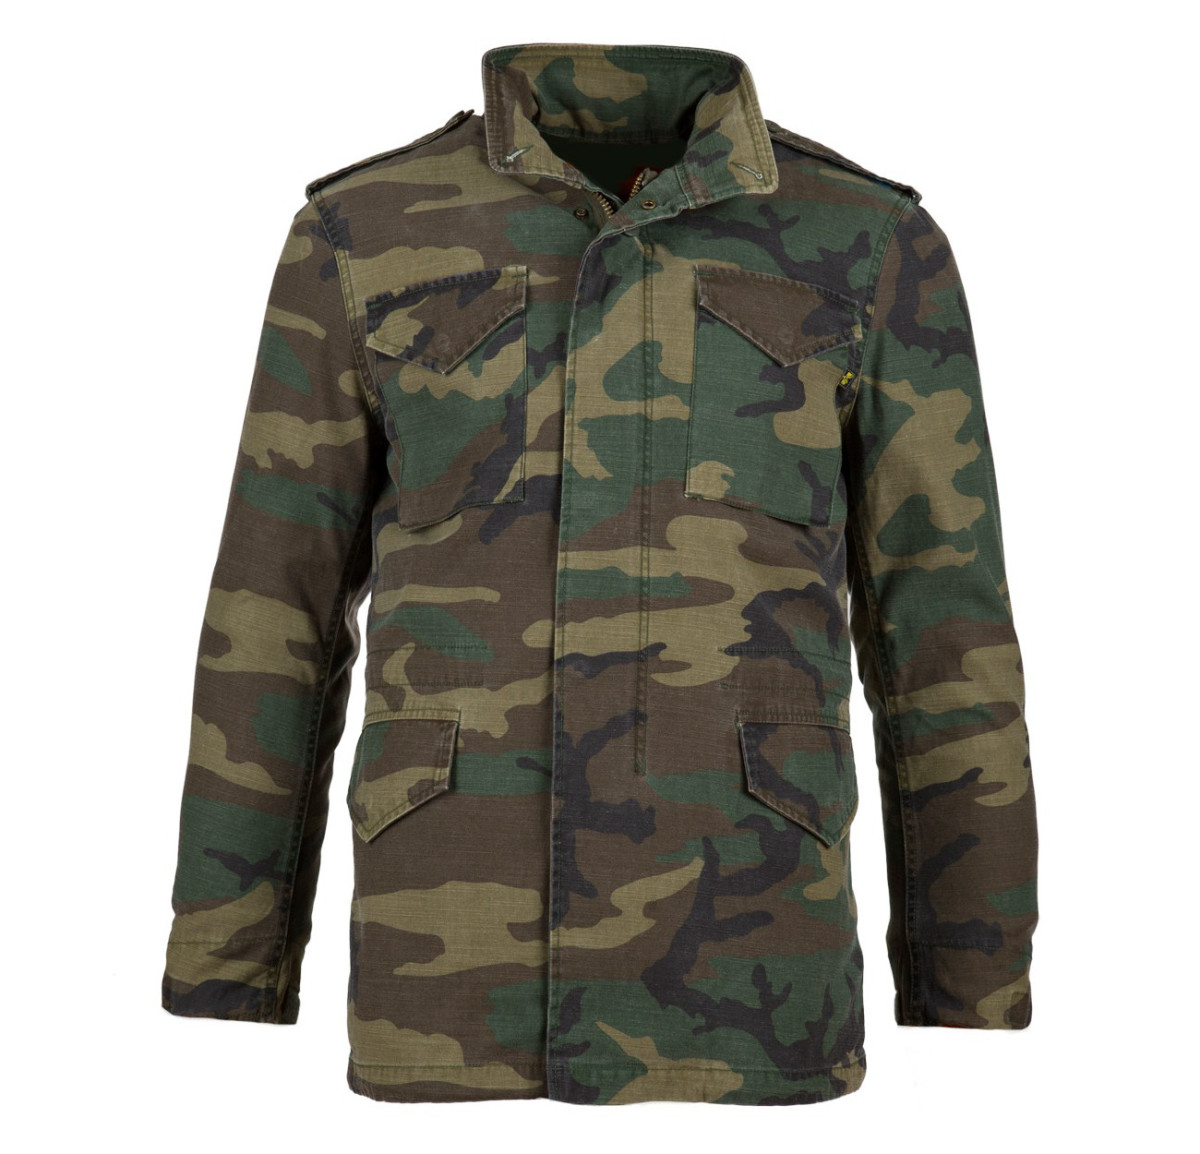 alpha-industries-m-65-defender-field-jacket.jpg